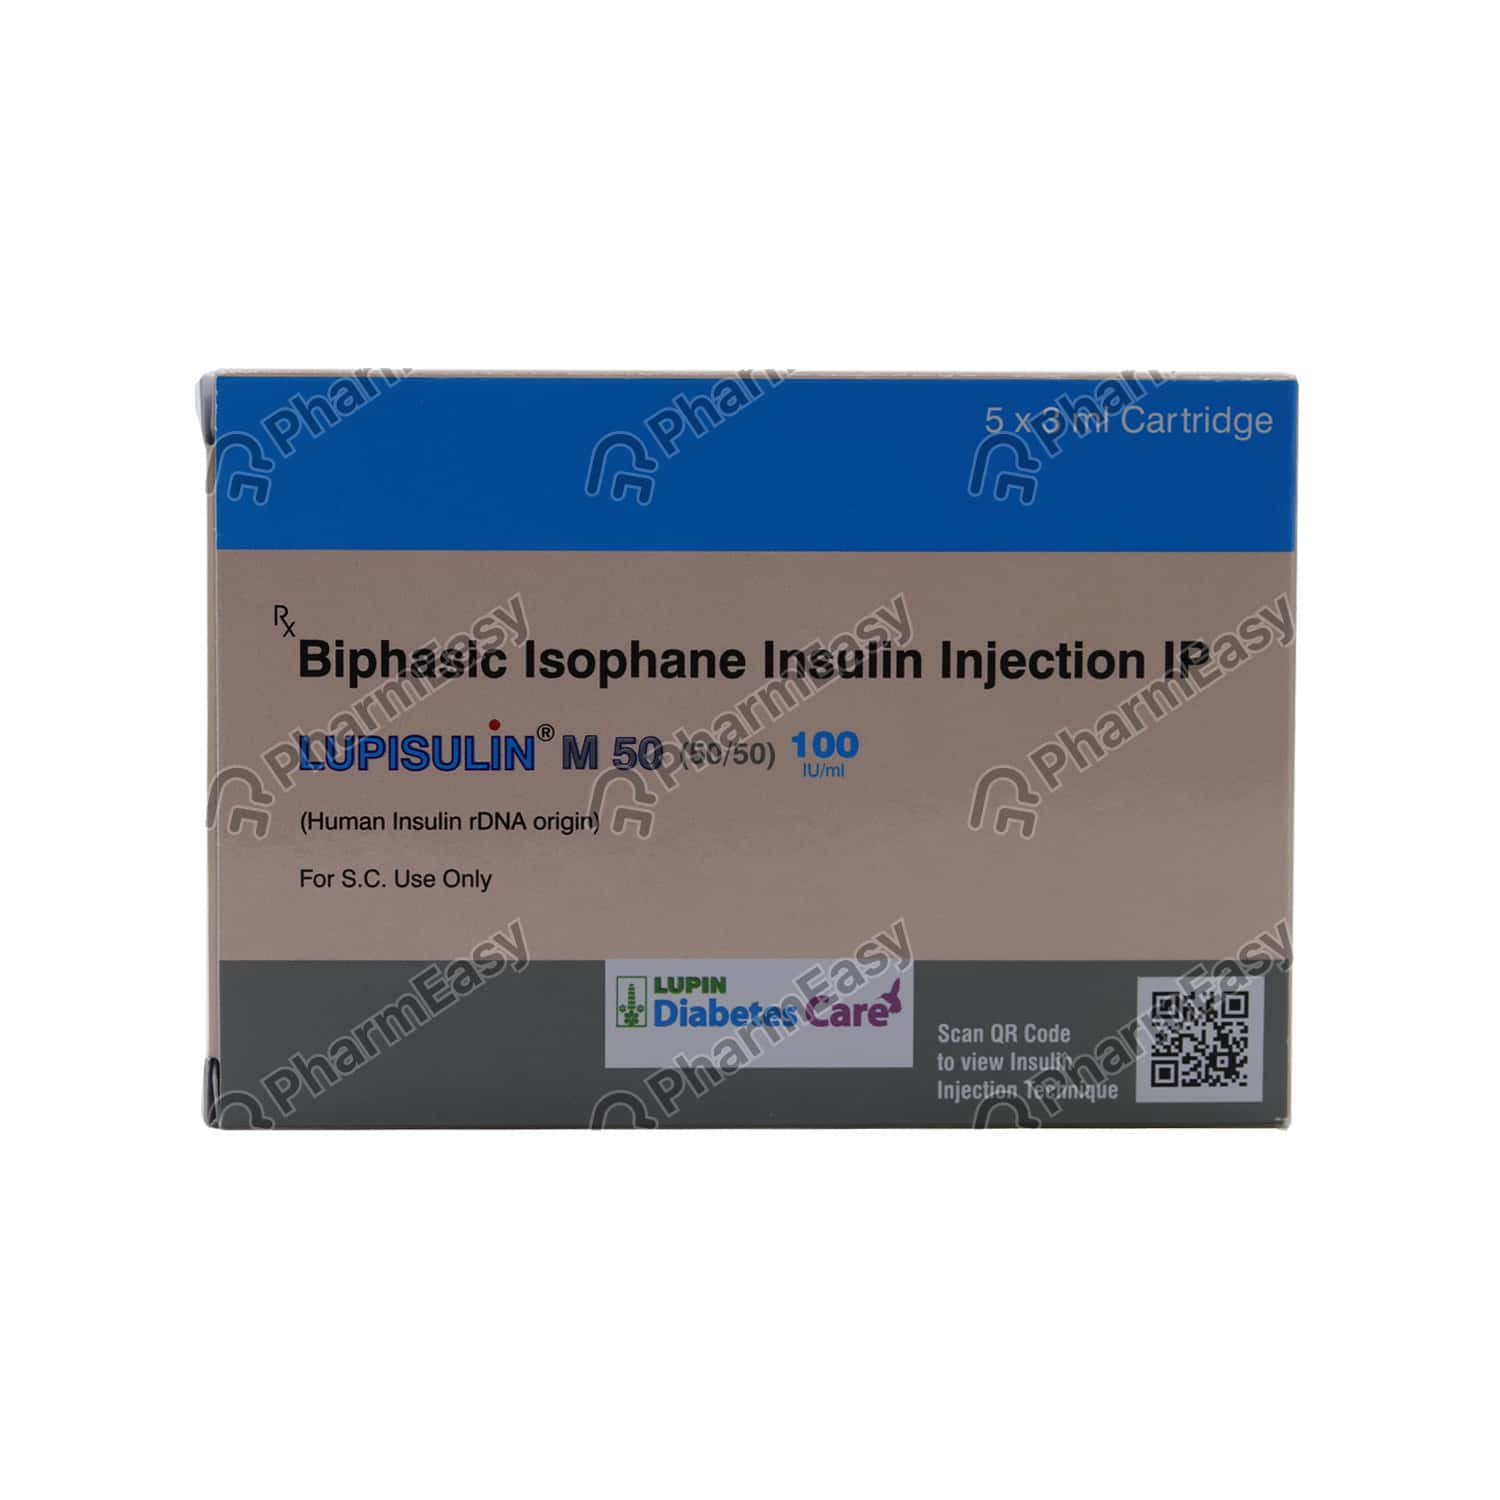 Lupisulin M50 50/50 100iu Cartridge 3ml